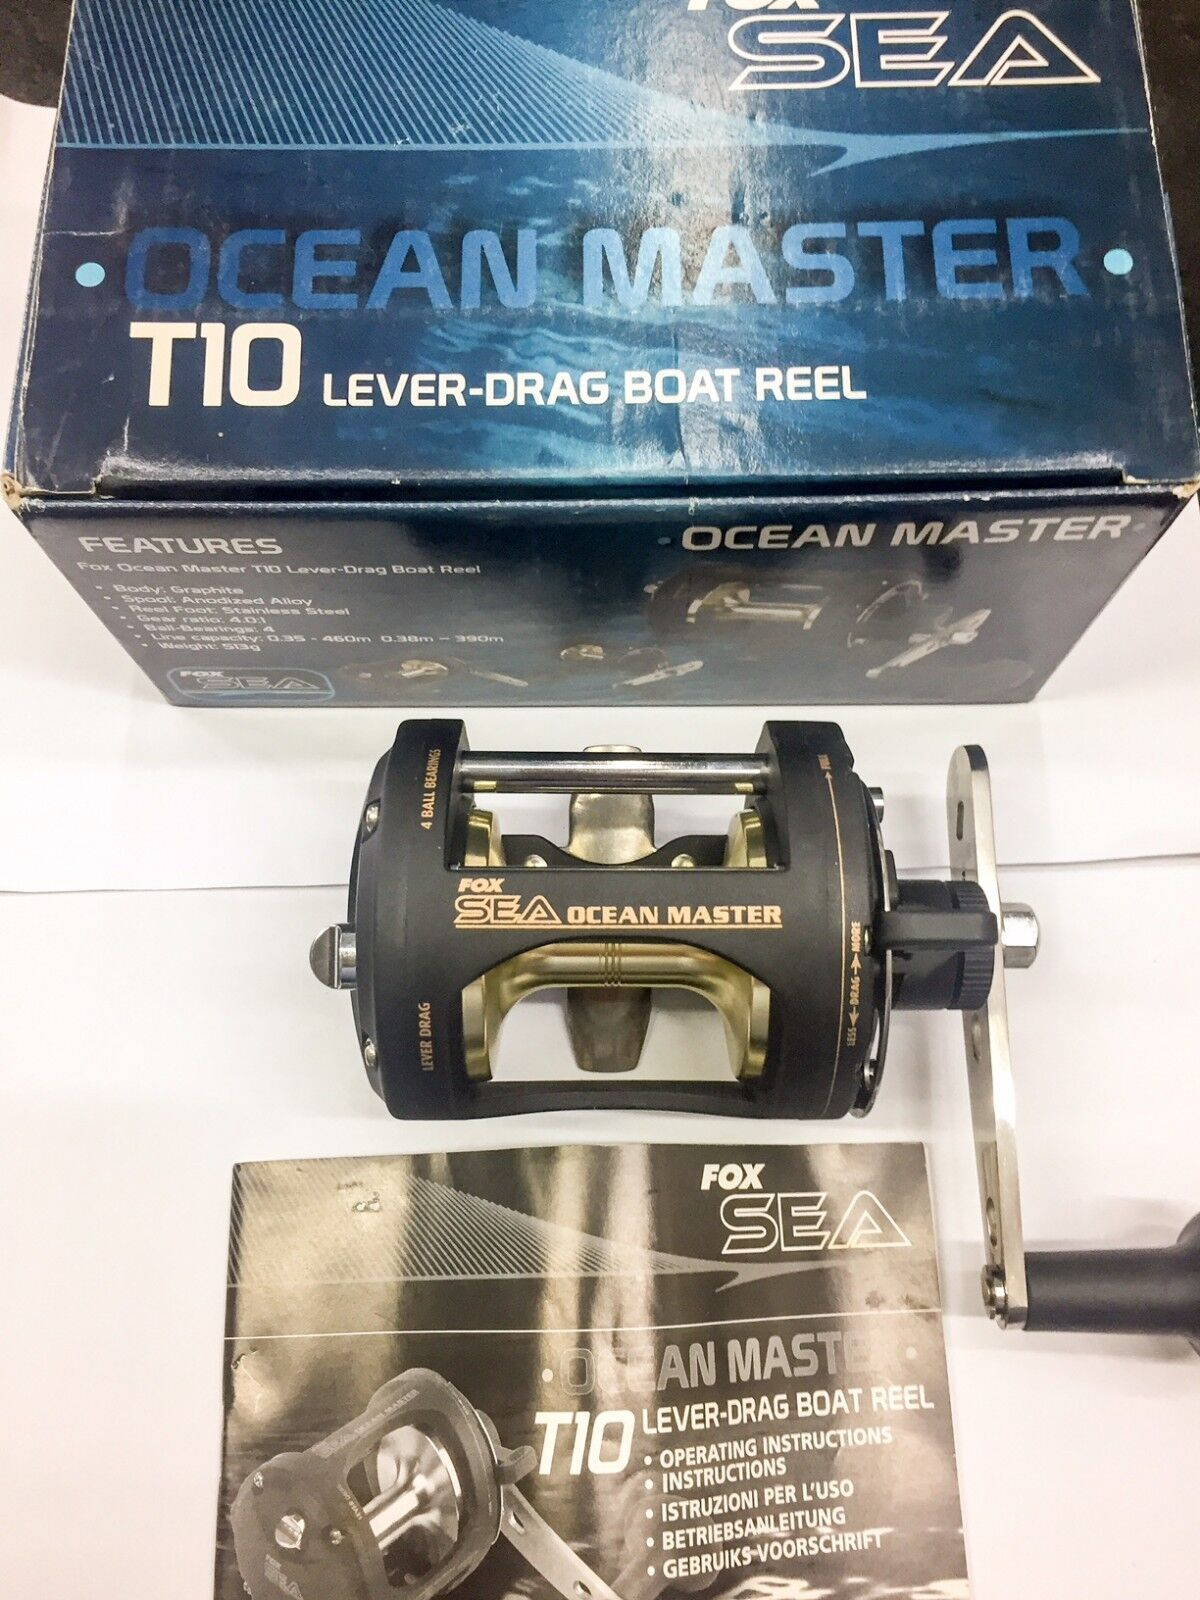 FOX SEA OCEAN MASTER T10 MULTIPLIER REEL RIGHT HANDLE  LEVER DRAG VINTAGE RAREST